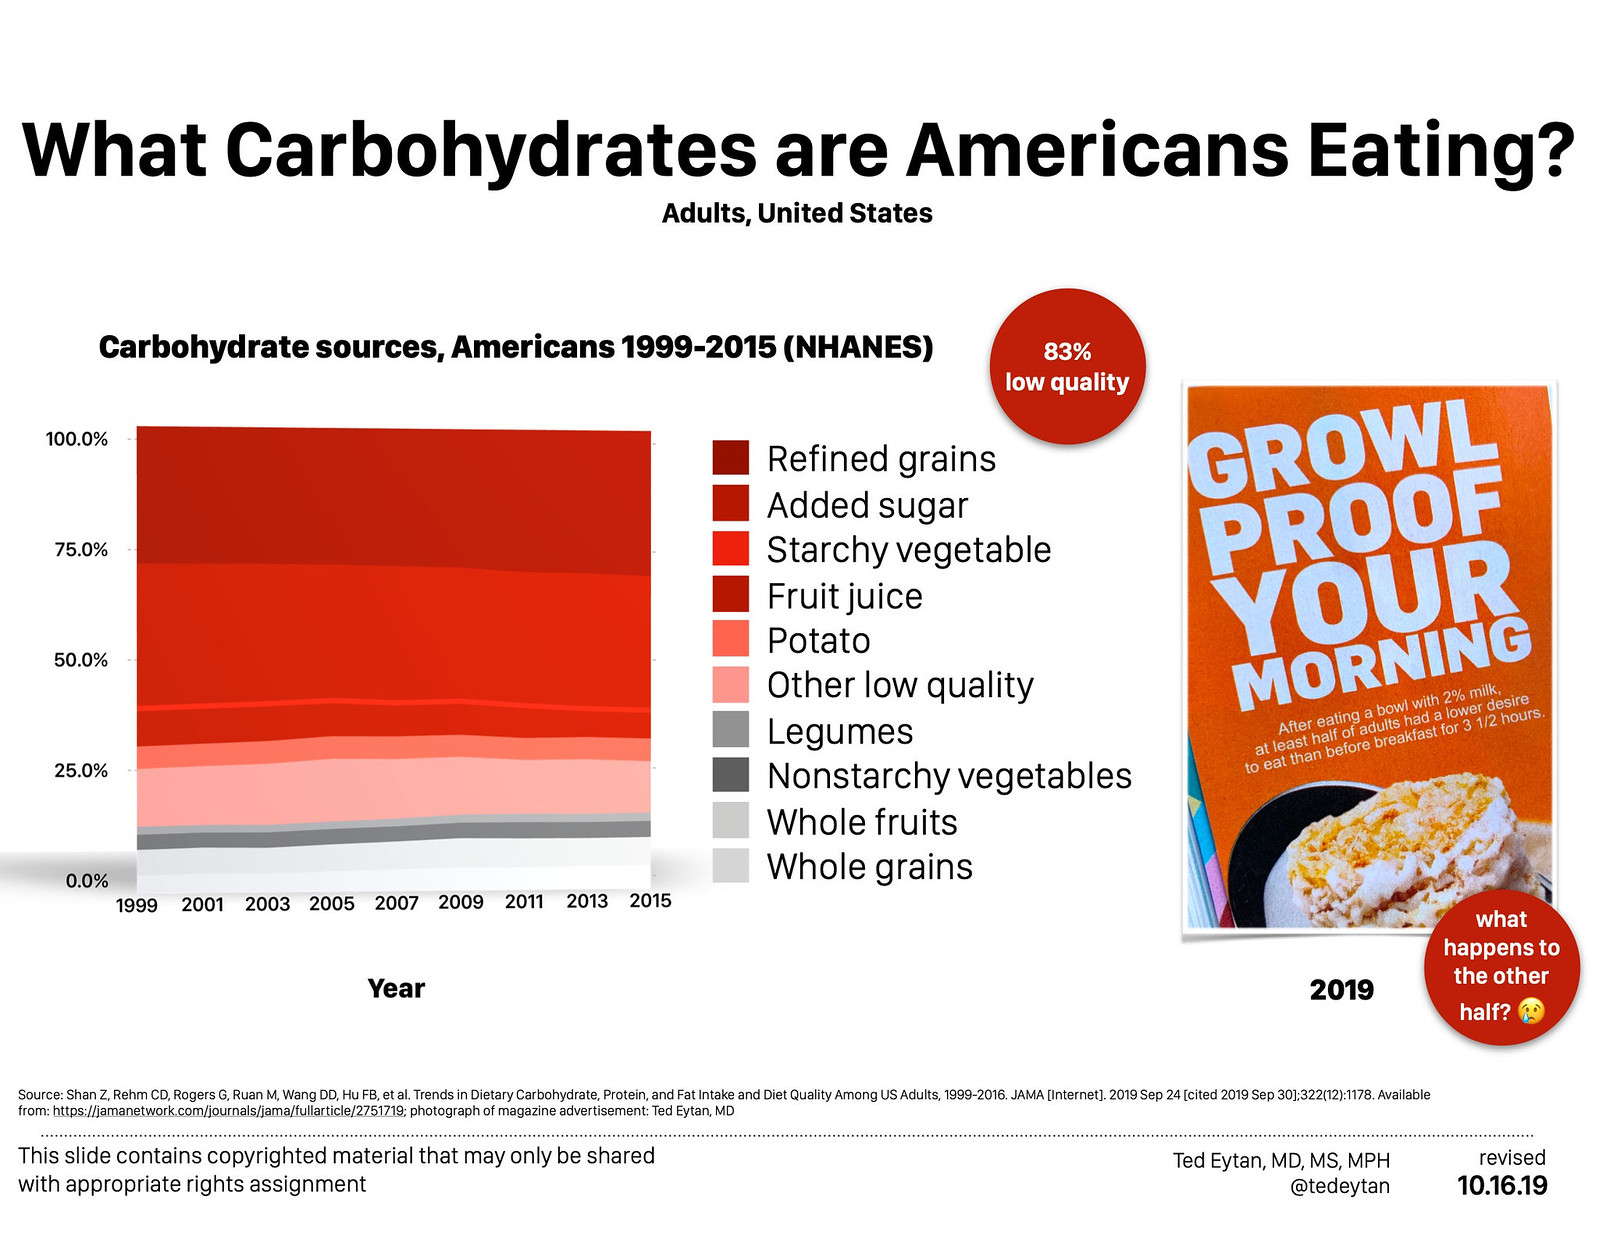 Just Read: Trends in Dietary Carbohydrate, Protein, and Fat Intake and Diet Quality Among US Adults, 1999-2016 - 83% of Carbohydrates are from low quality sources